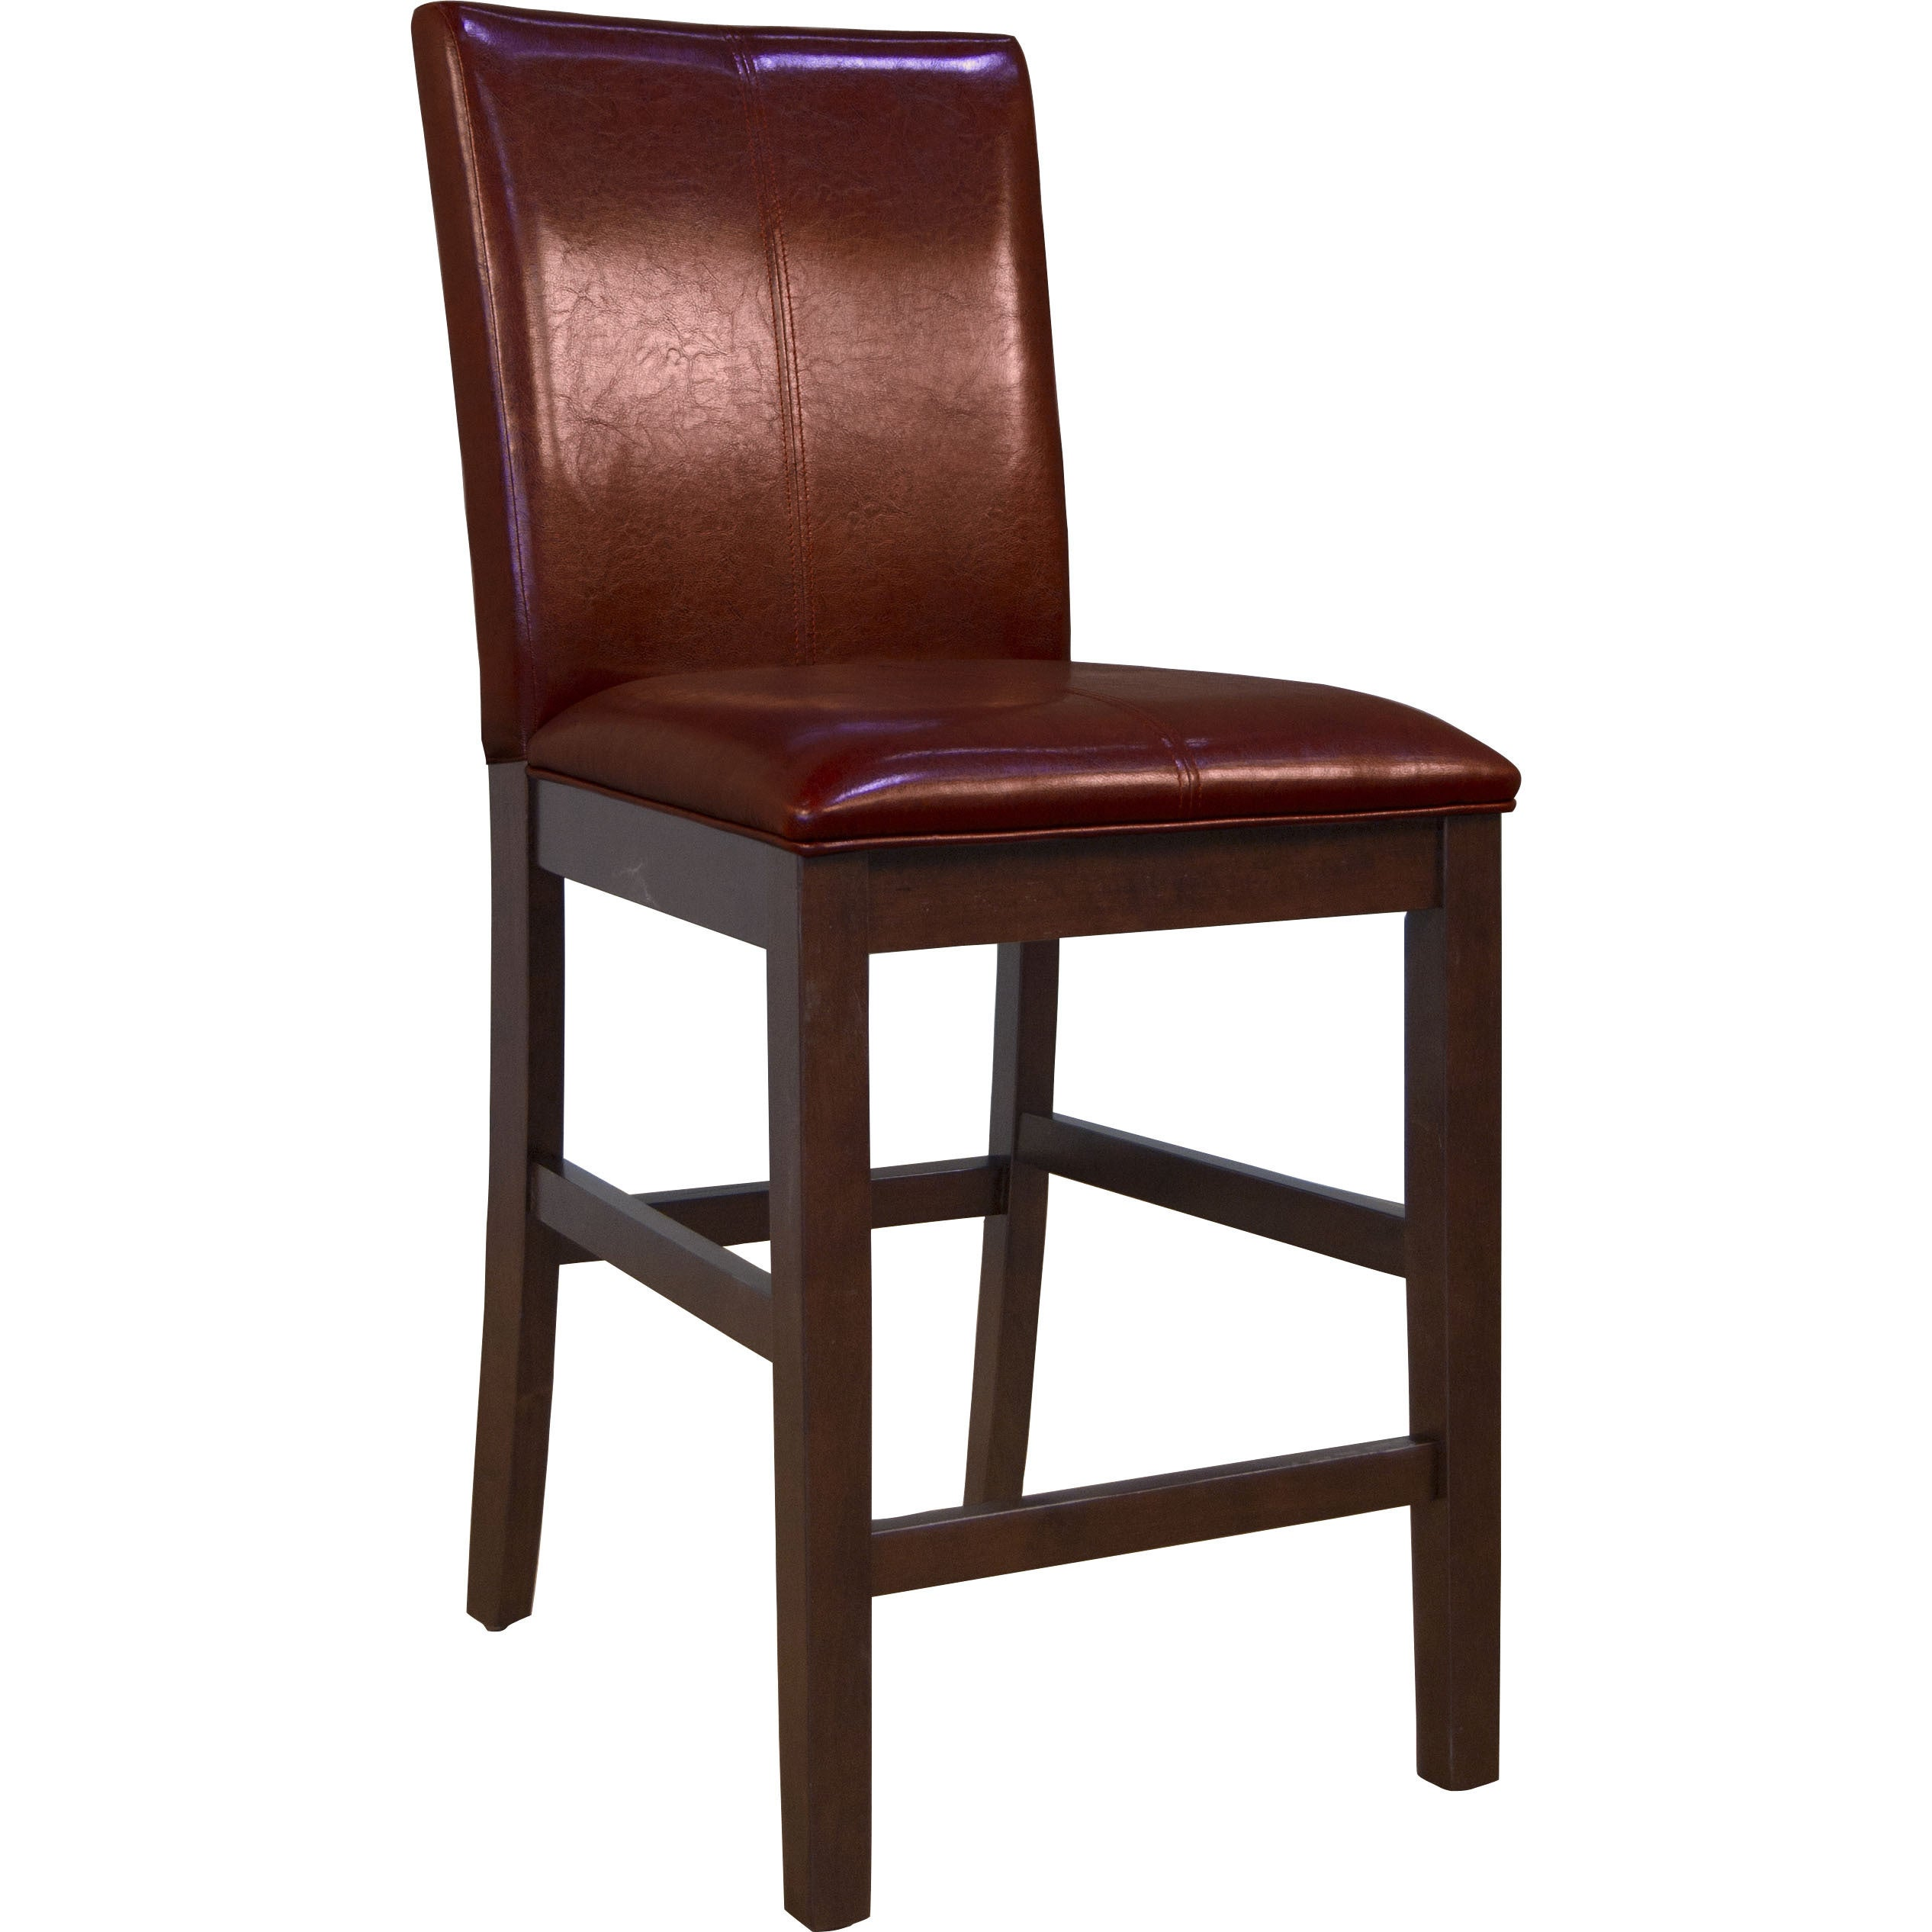 Simply Solid Alana Curved Back Parson Counter Chair Red (...